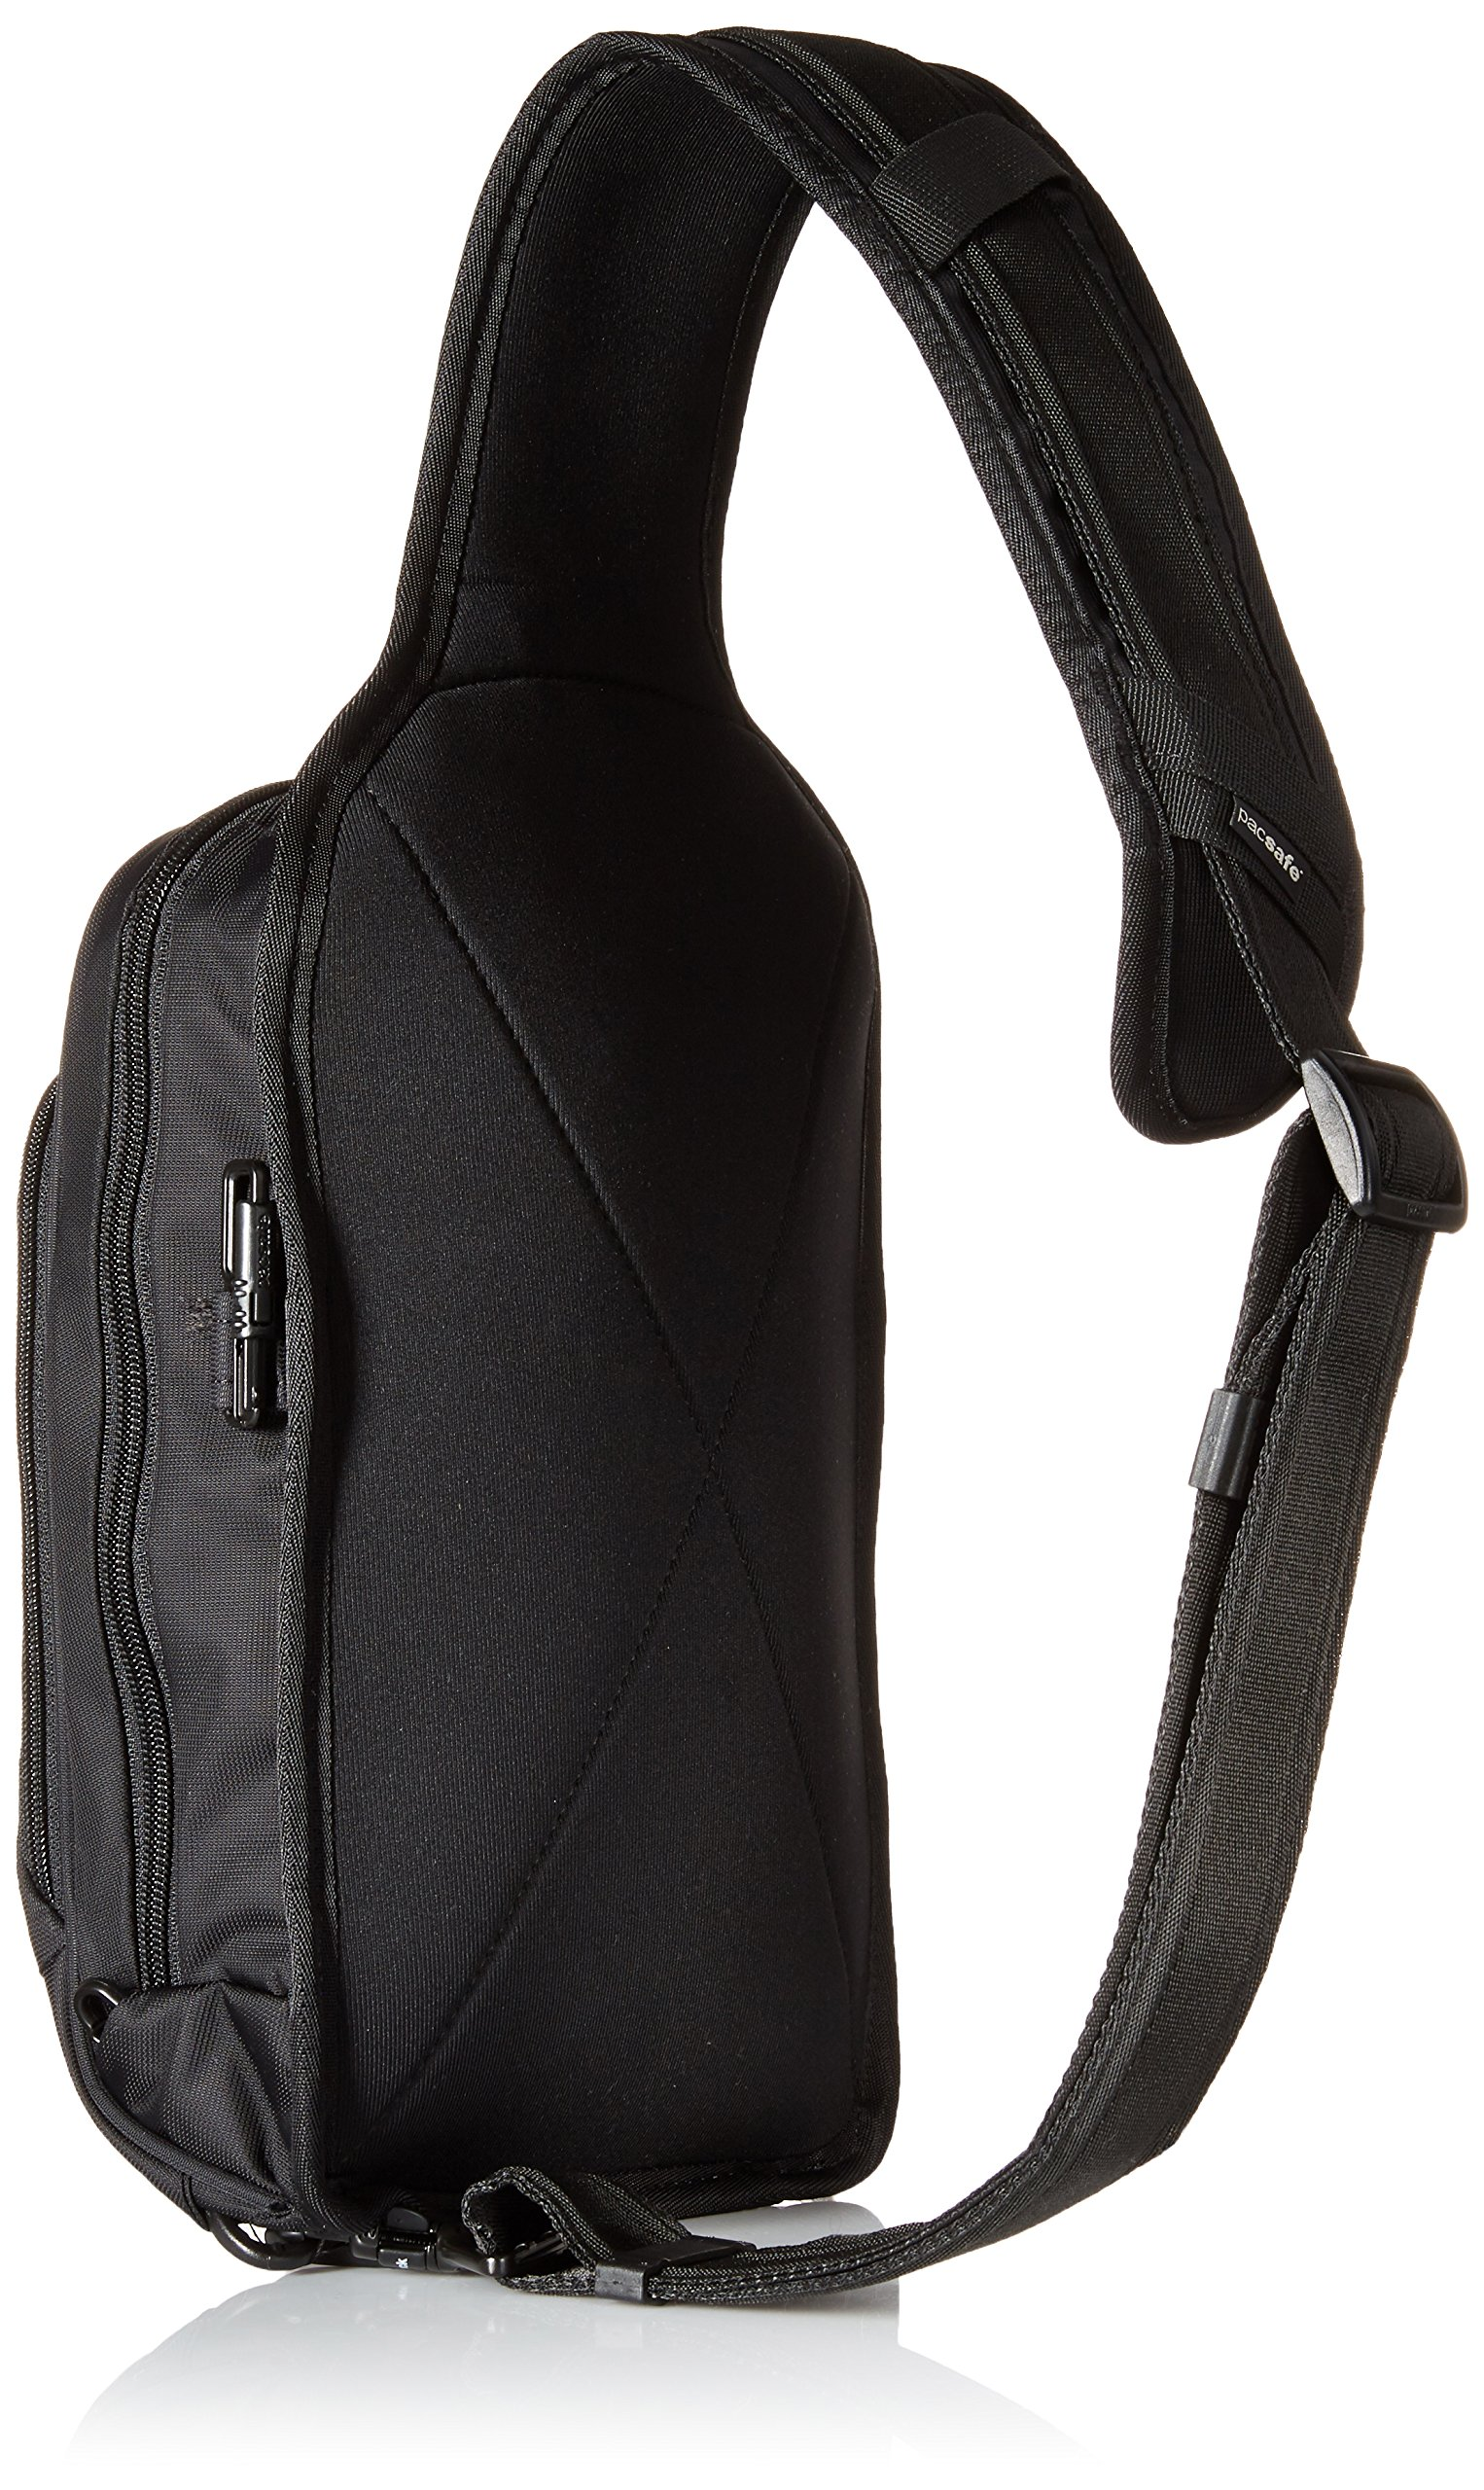 Pacsafe Metrosafe LS150 Anti-Theft Sling Backpack, Black by Pacsafe (Image #3)